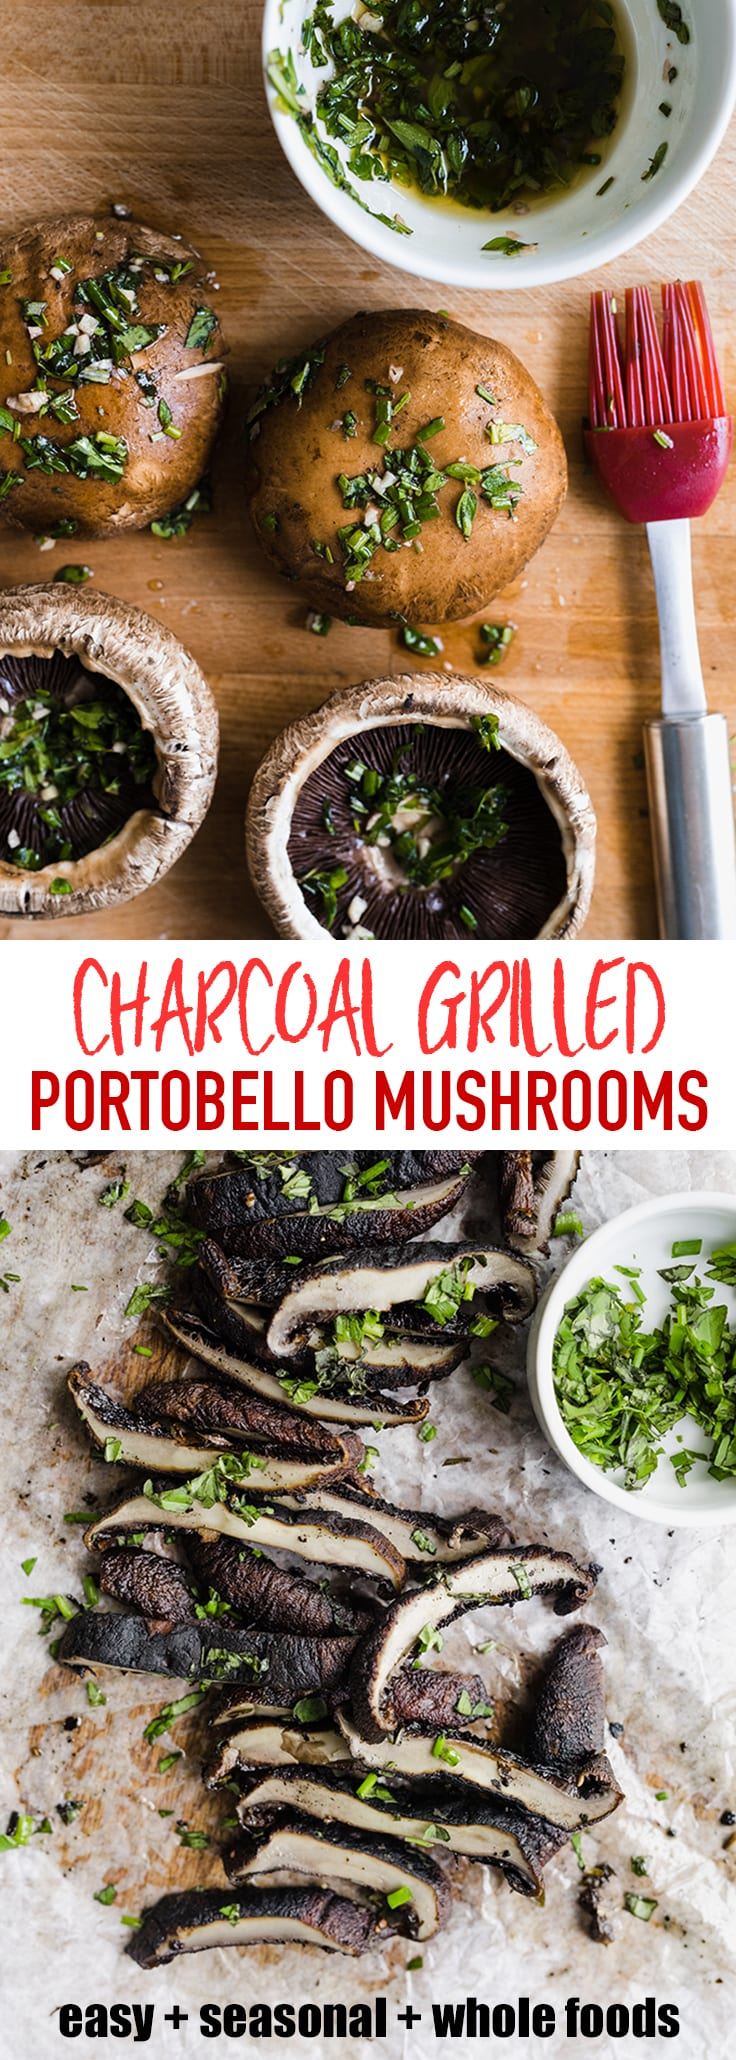 These charcoal grilled portobello mushrooms are slightly smoky, super juicy, and perfectly charred. This is an easy, simple, and insanely delicious whole food side dish that's a total crowd pleaser! #wholefood #realfood #grilledmushrooms #vegetarian #paleo